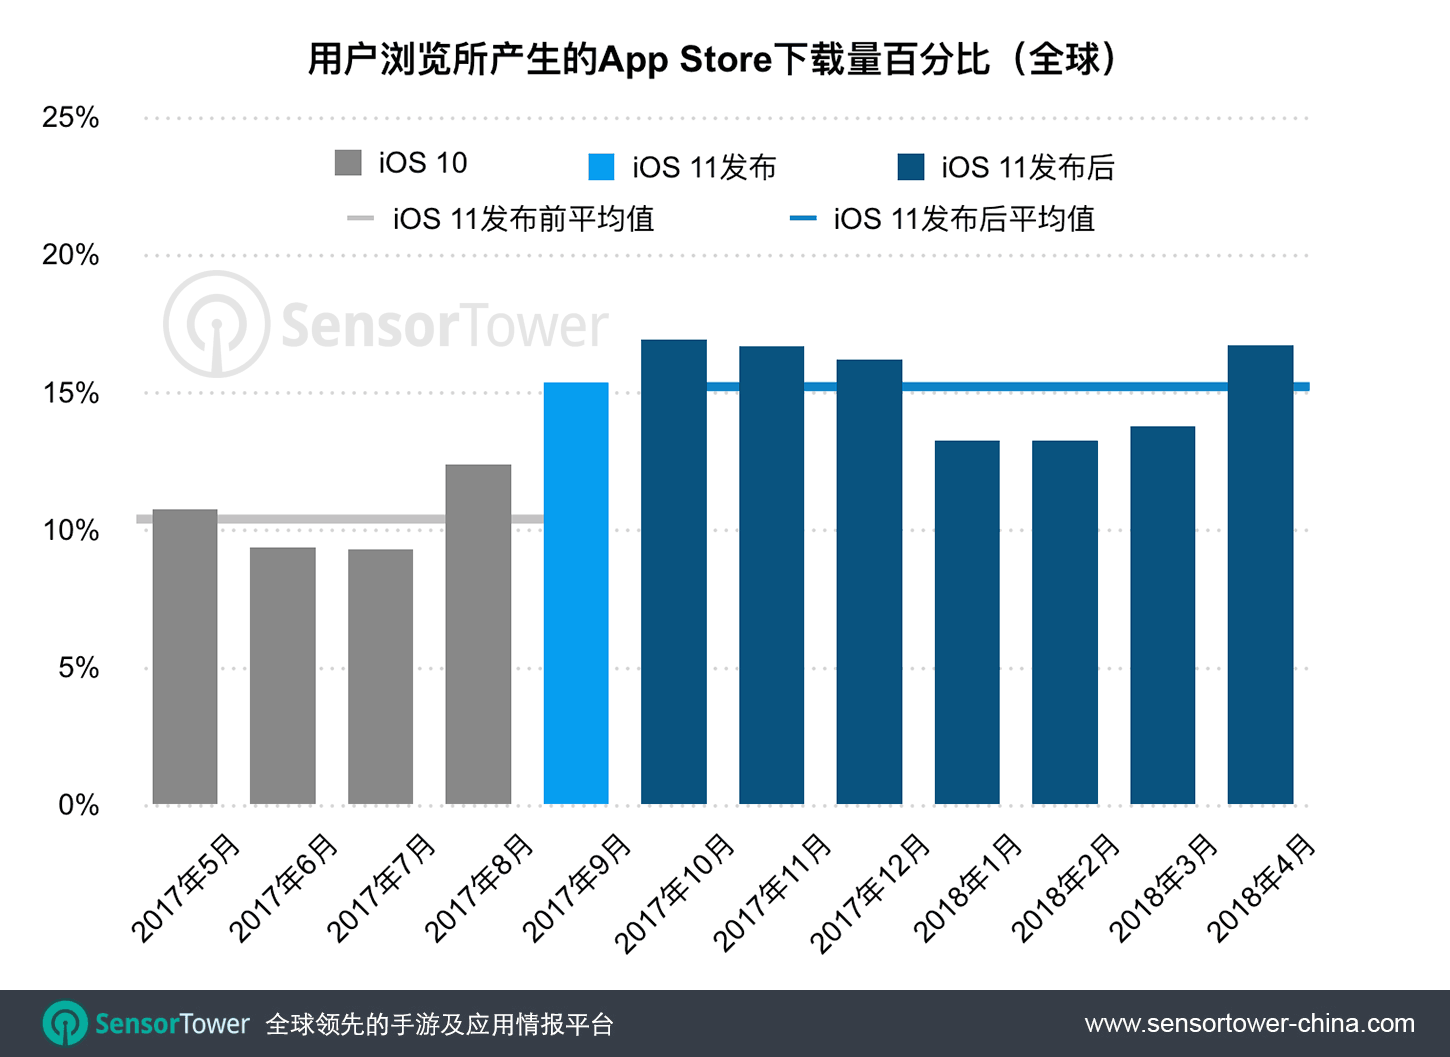 Chart showing the percentage of downloads that come from browsing the App Store CN  - app store installs from browse cn - iOS 11新版App Store亮相以来,全球用户在商店中的浏览推动了15%的下载量,高于改版前